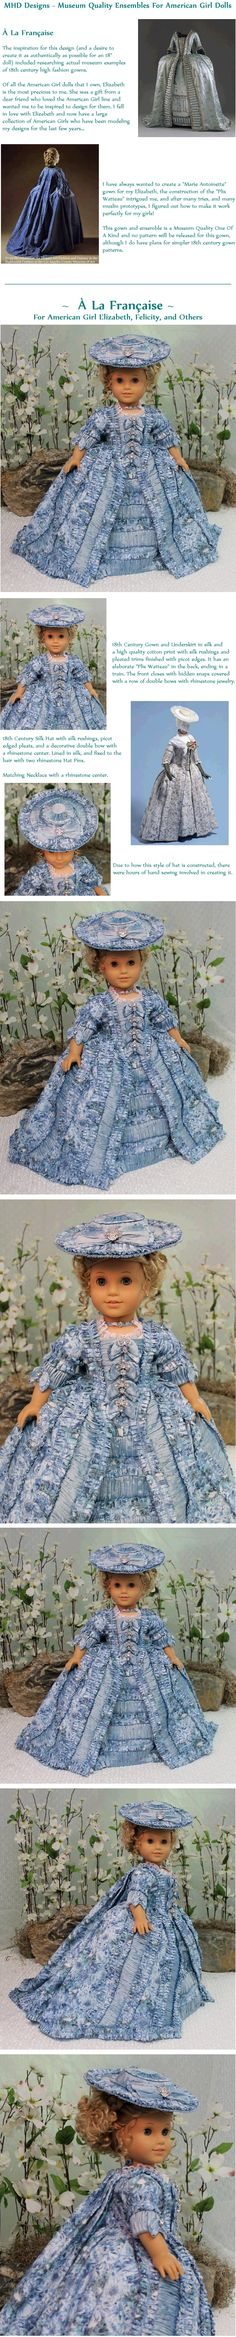 MHD  OOAK  for Elizabeth/Felicity. Only a simpler pattern will be forthcoming. Ends 2/10/14. Start bid $1000 or BIN for $2500.00